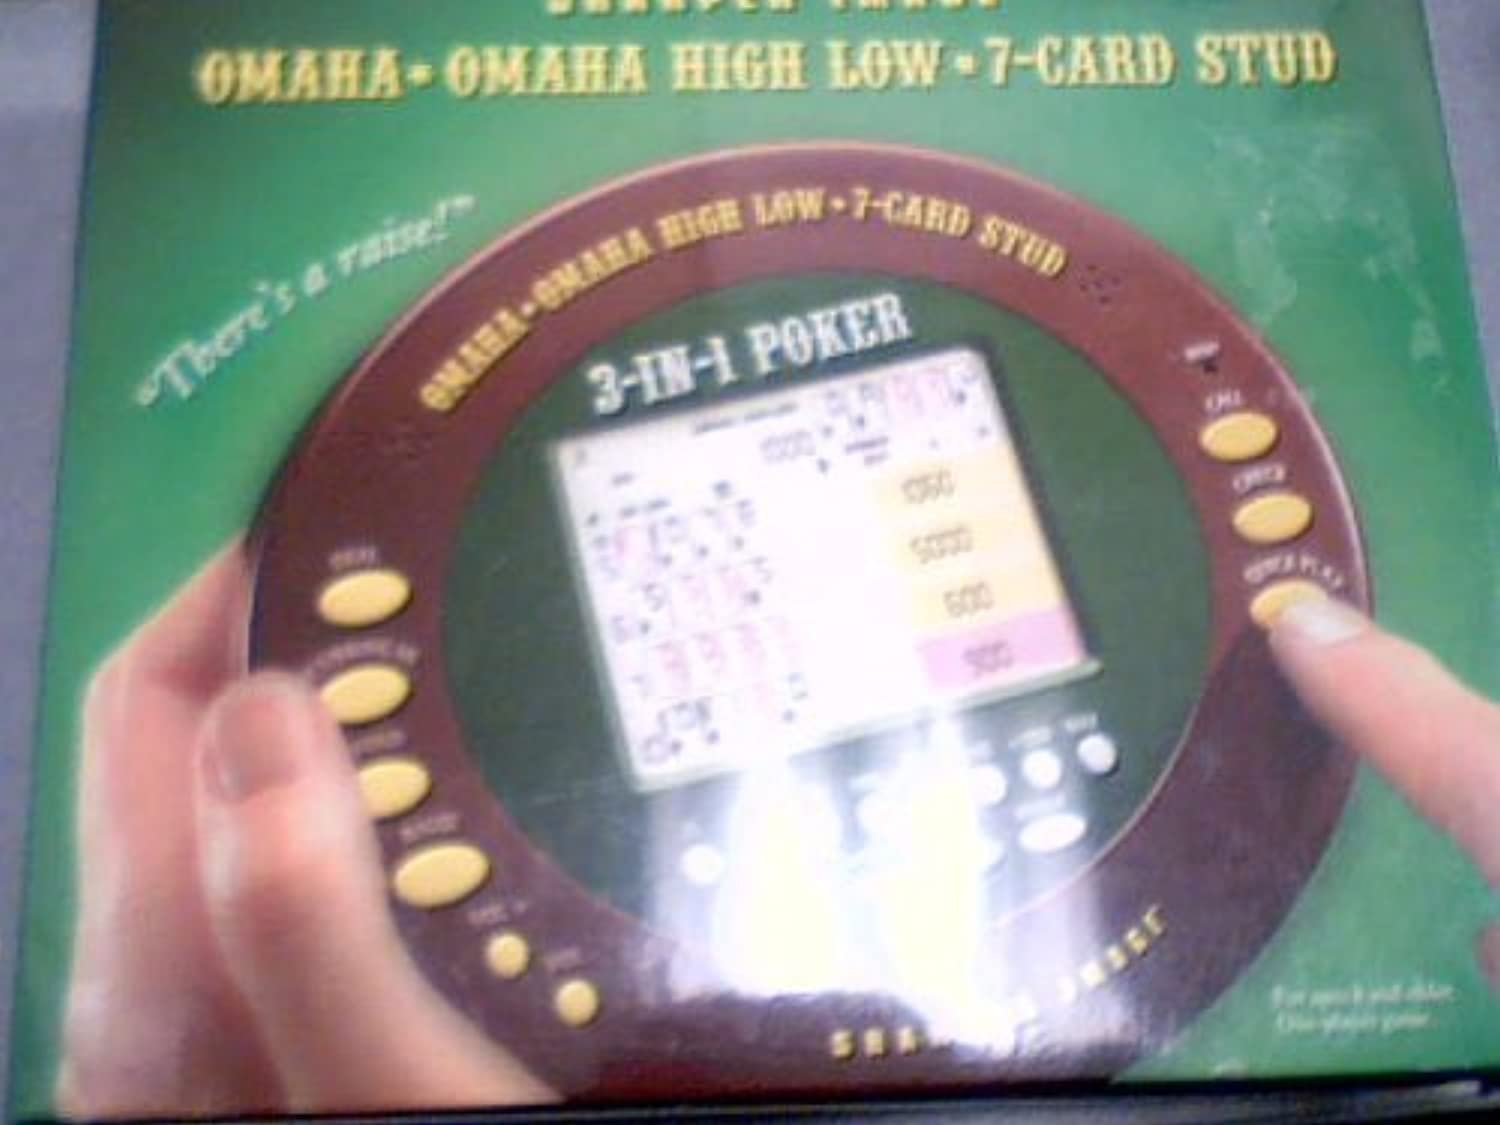 2005 Sharper Image Corporation Sharper Image Omaha * Omaha High Low * 7-Card Stud LCD Hand-Held Model# MS051 (Plastic Blister Package) by Sharper Image [並行輸入品]